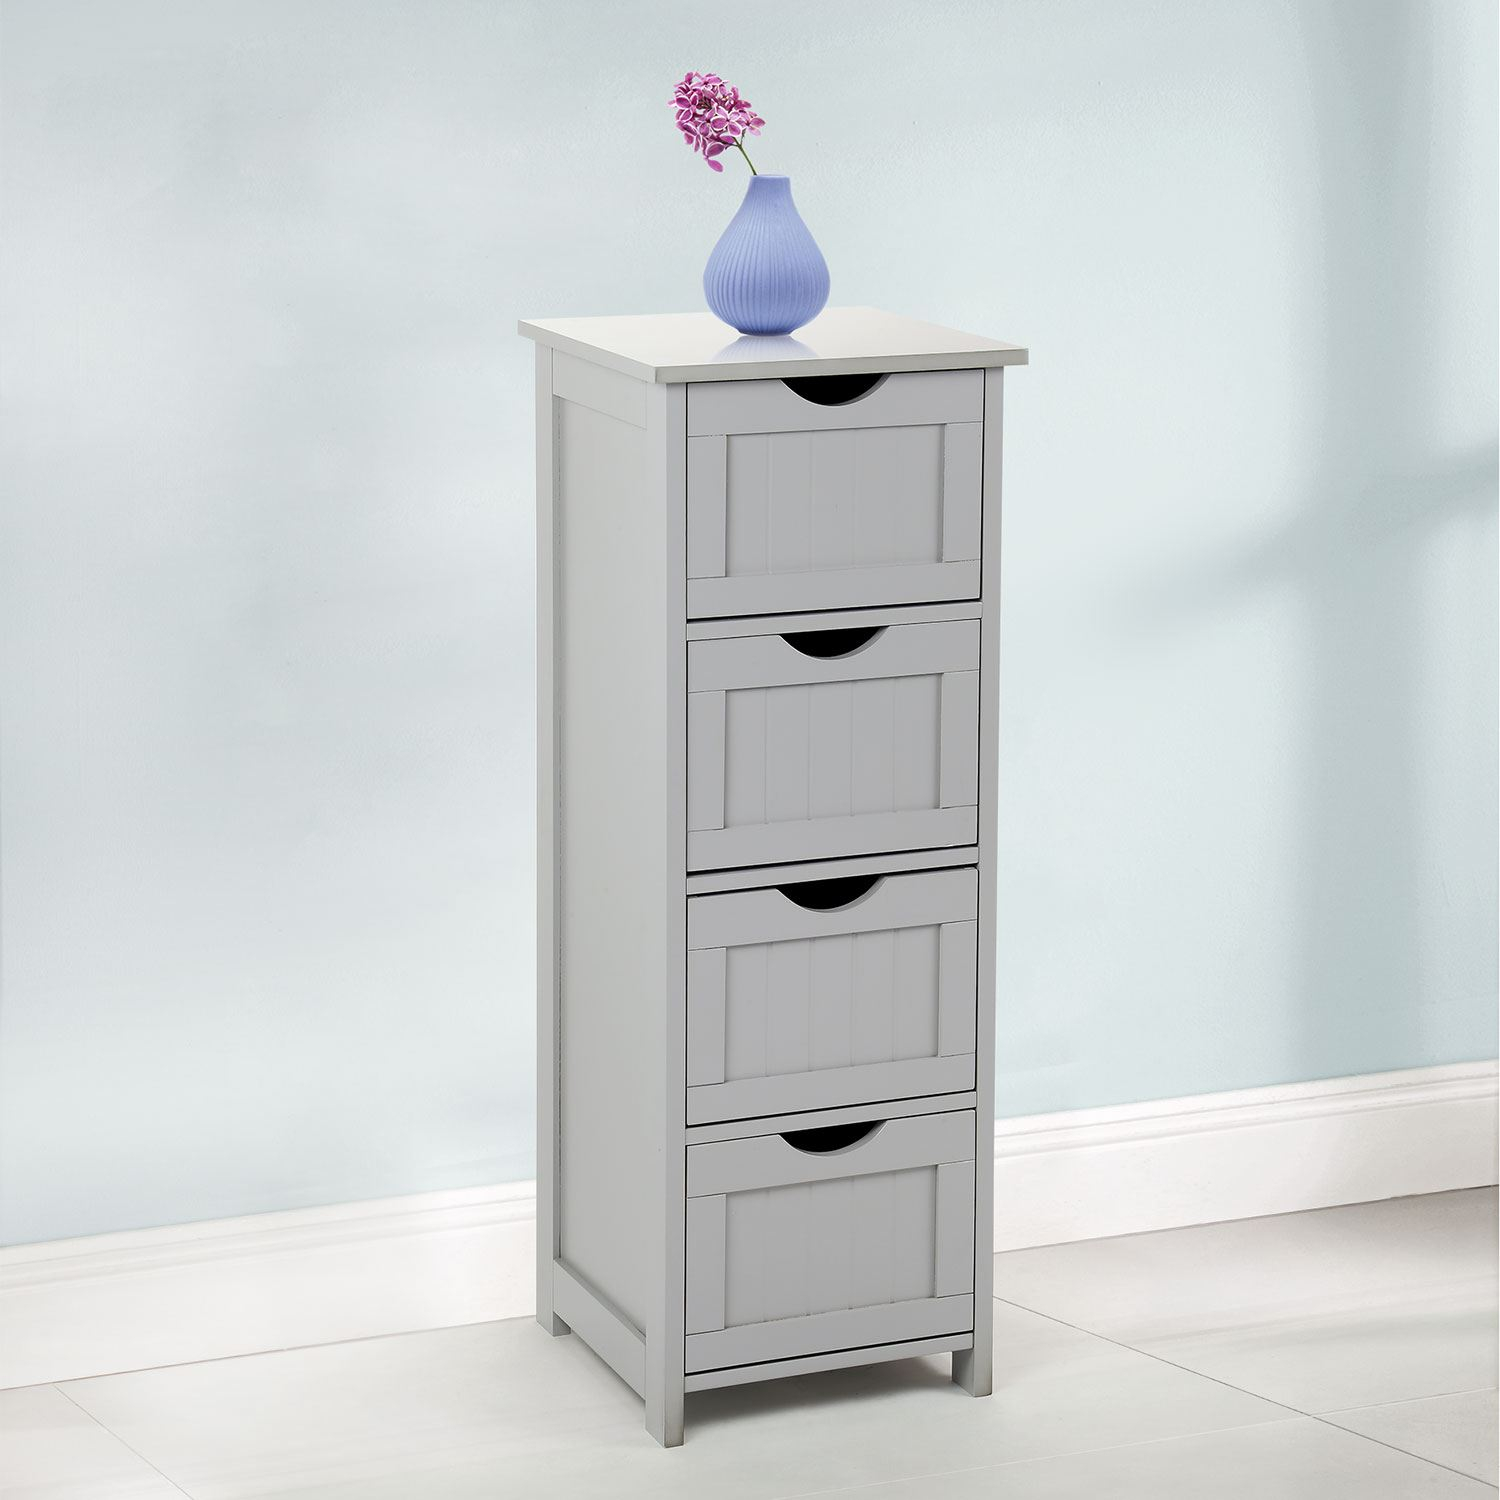 Details About 4 Drawer Slim Chest Tall Bathroom Storage Cabinet Bedroom Hallway Grey pertaining to sizing 1500 X 1500